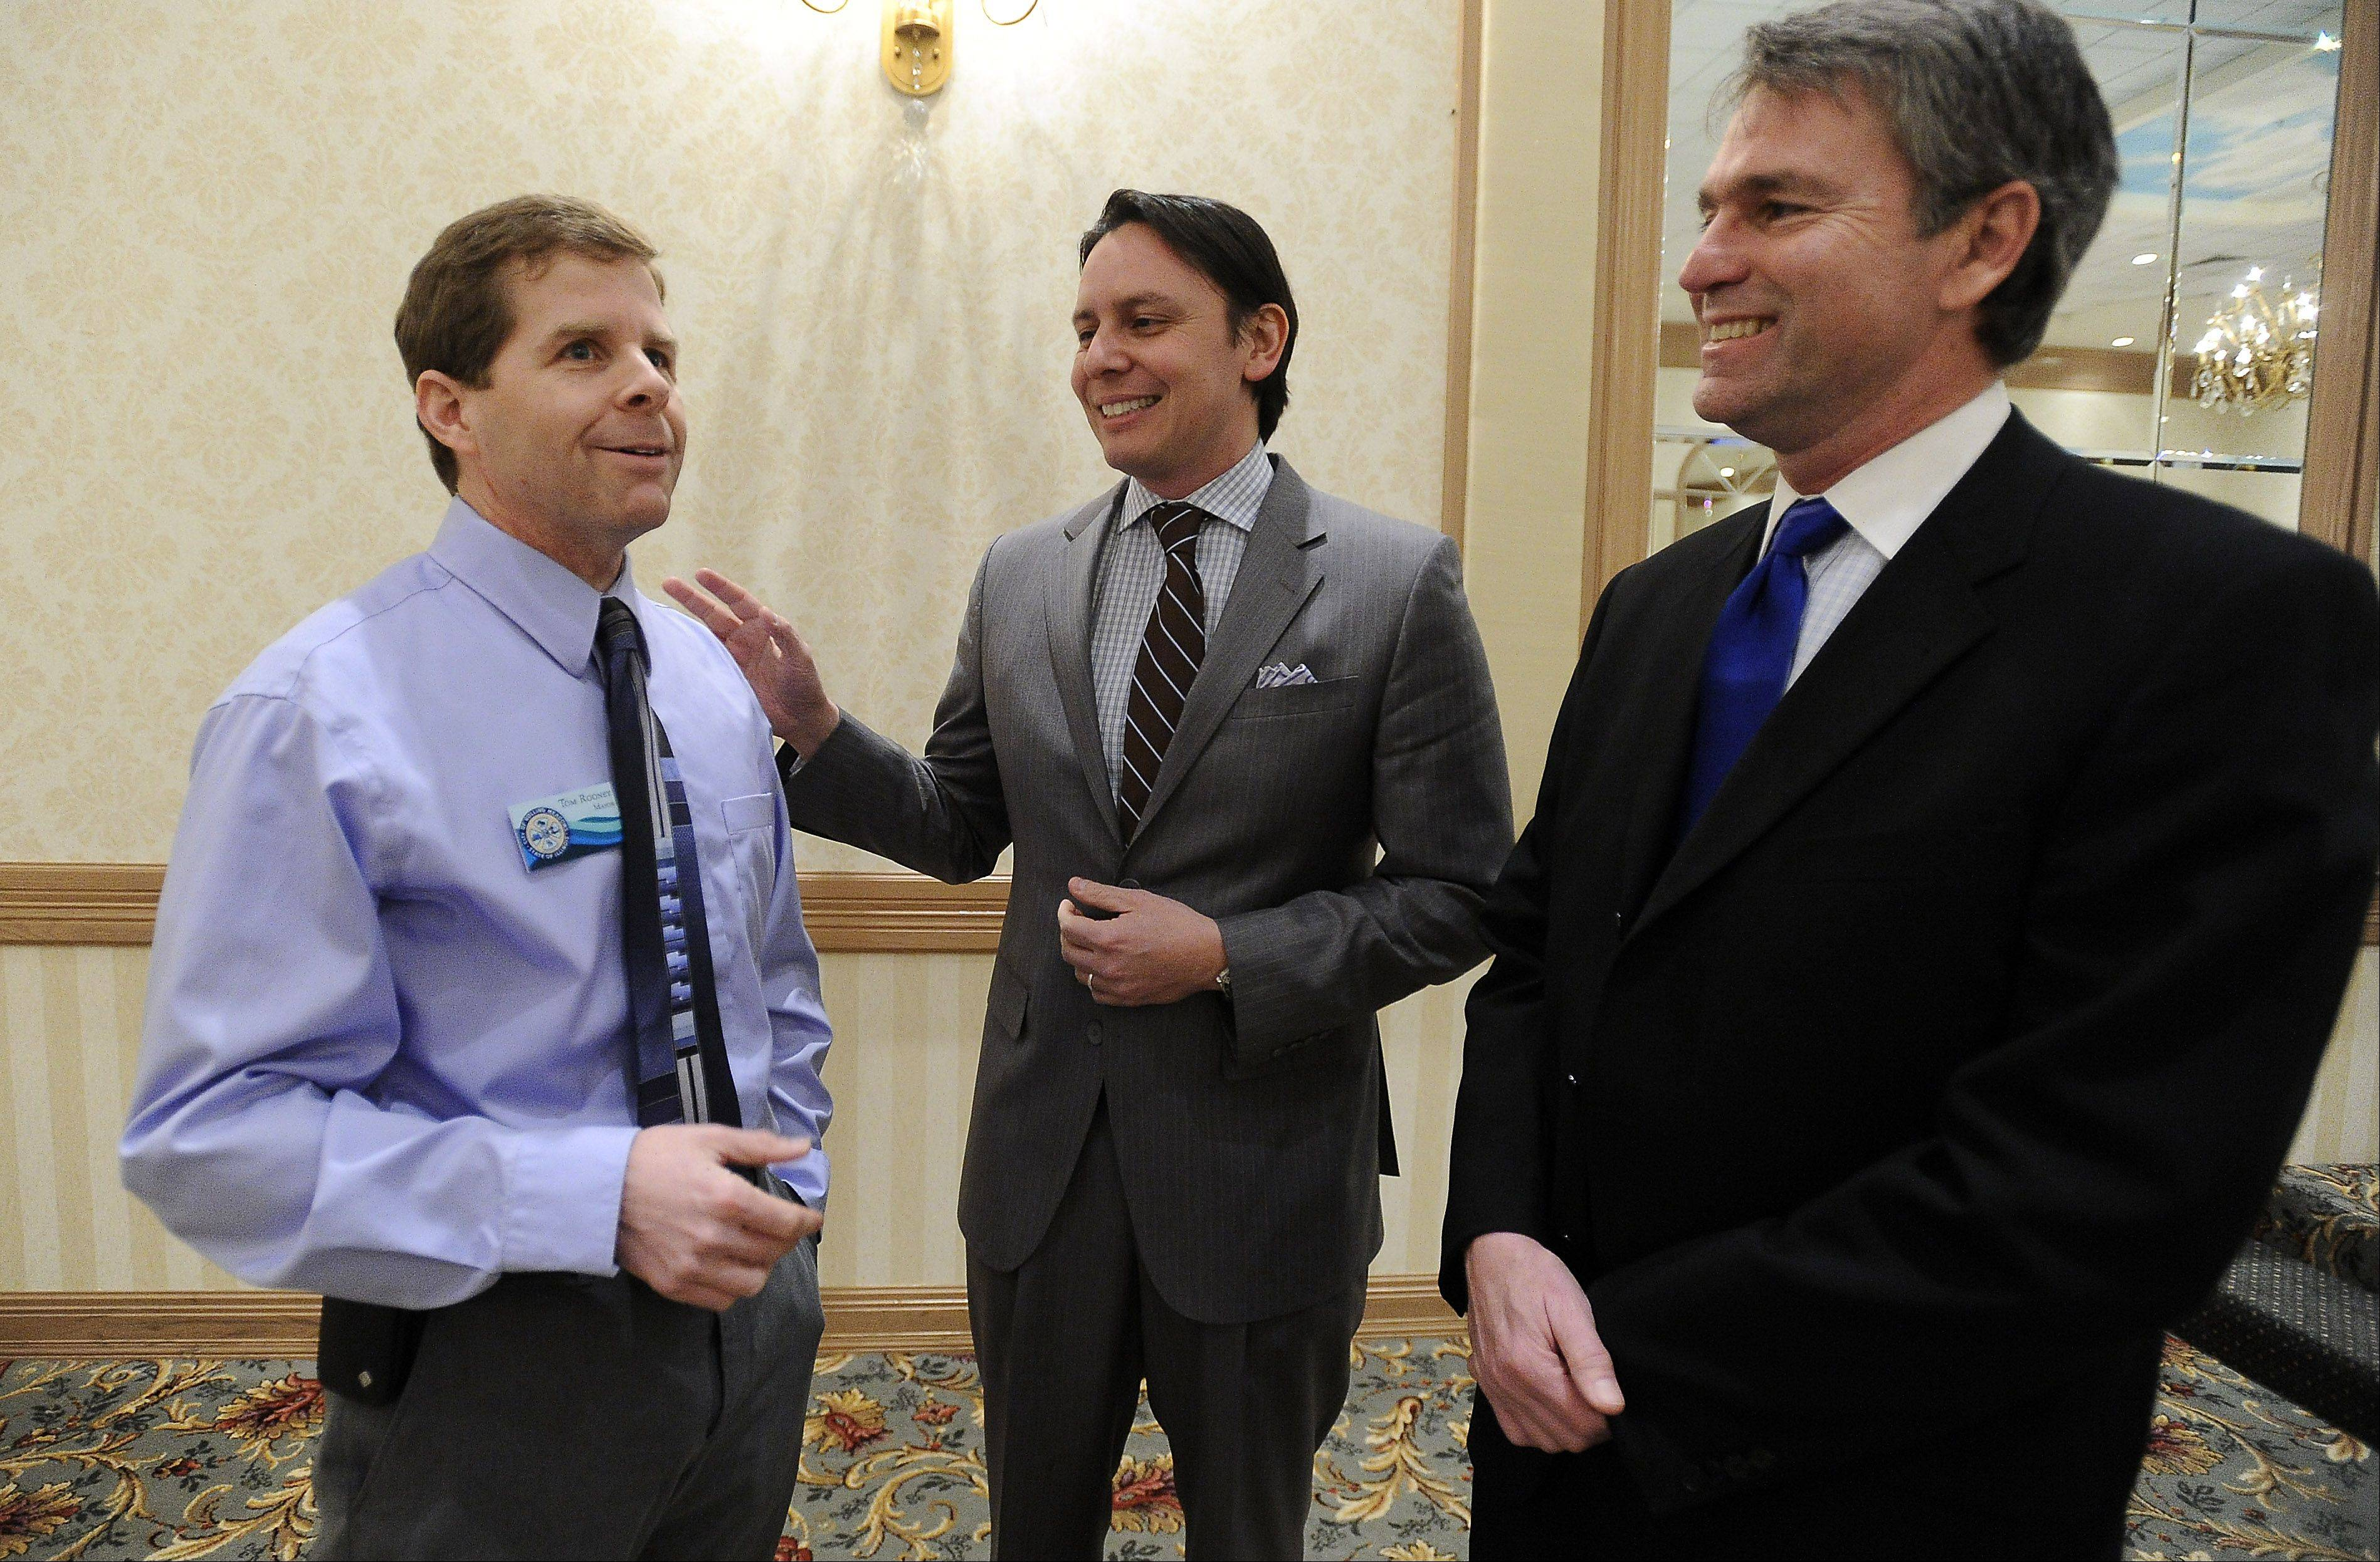 Rolling Meadows Mayor Tom Rooney, left, speaks with Javier Barrios, center and Tom Leigh both of Good Energy of Peoria at the chamber lunch.